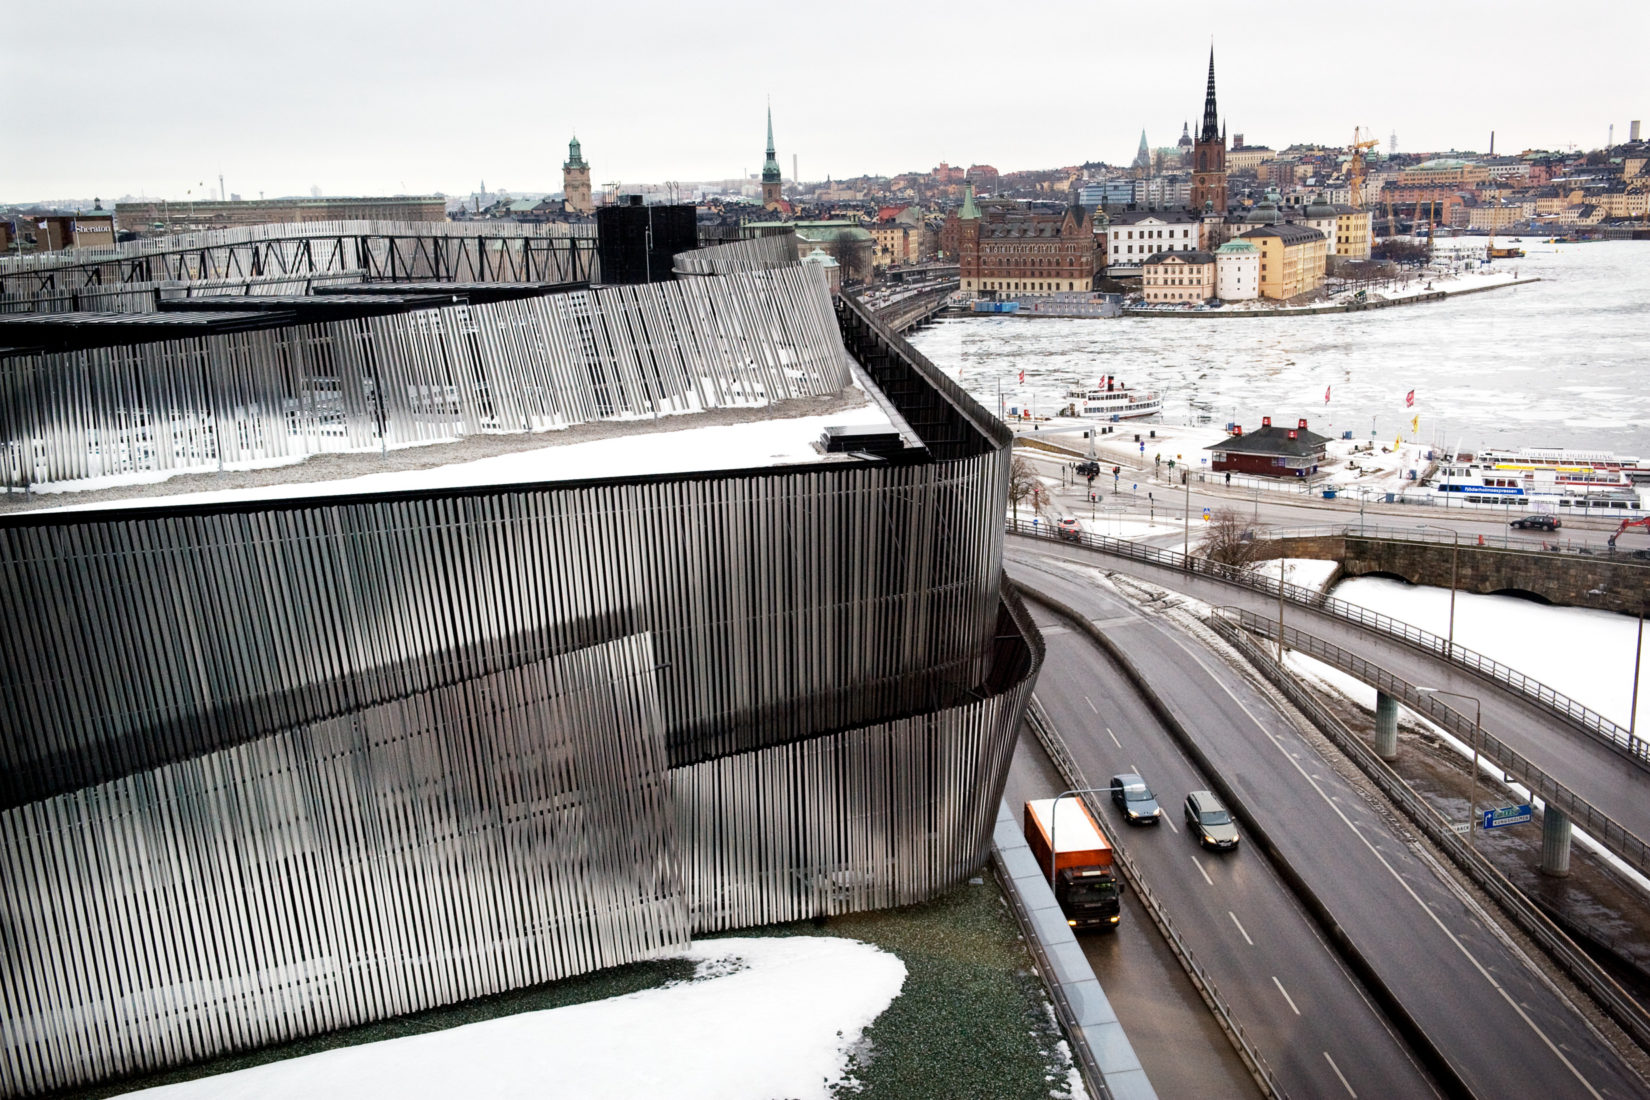 Stockholm Water Front building and the skyline behind as well as a part of the ice covered lake Mälaren in between. Photographer: Cecilia Larsson Lantz